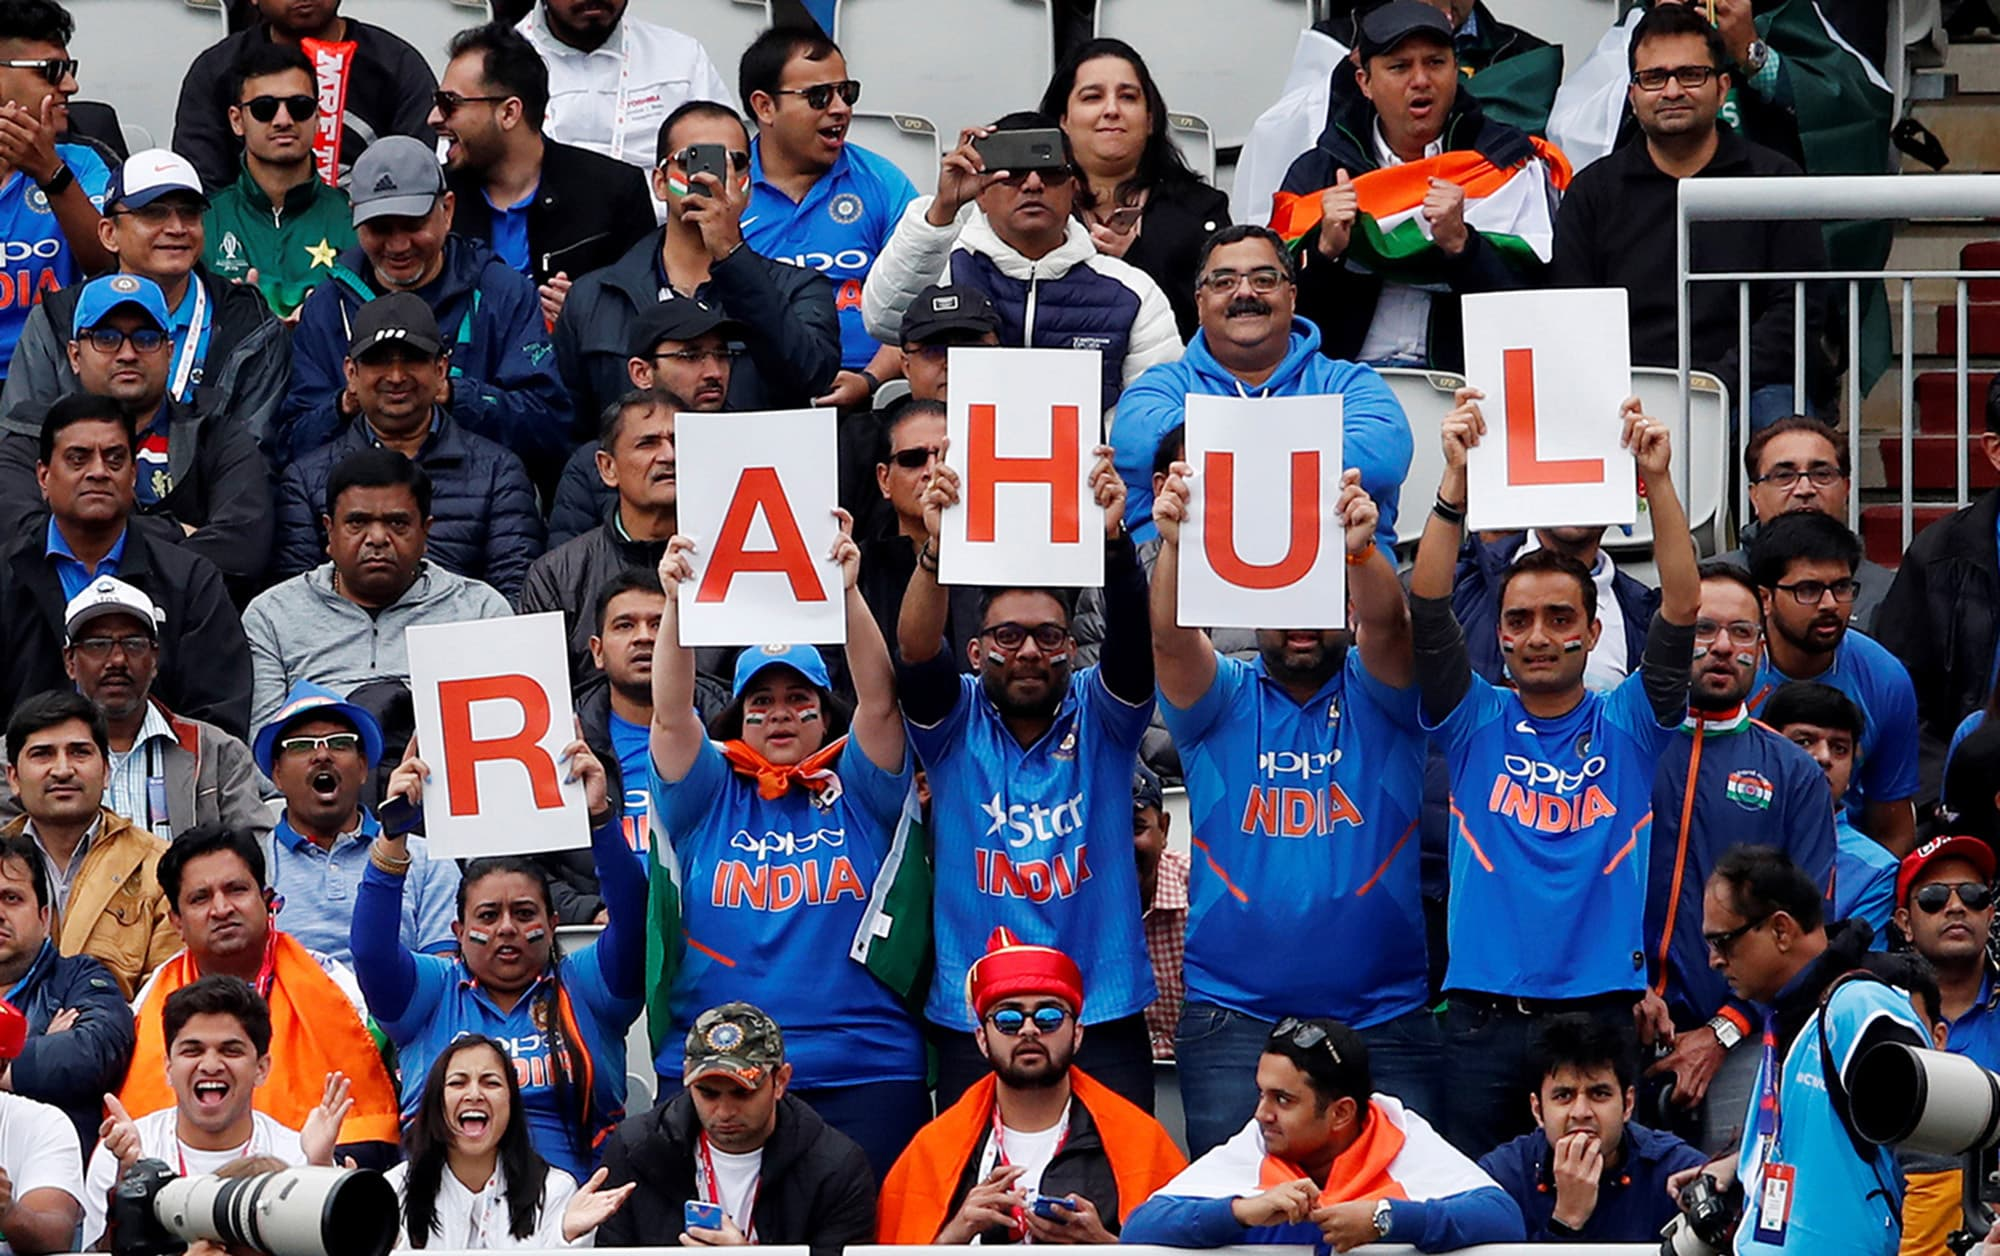 Indian fans hold up a banner in support of K.L. Rahul. ─ Reuters